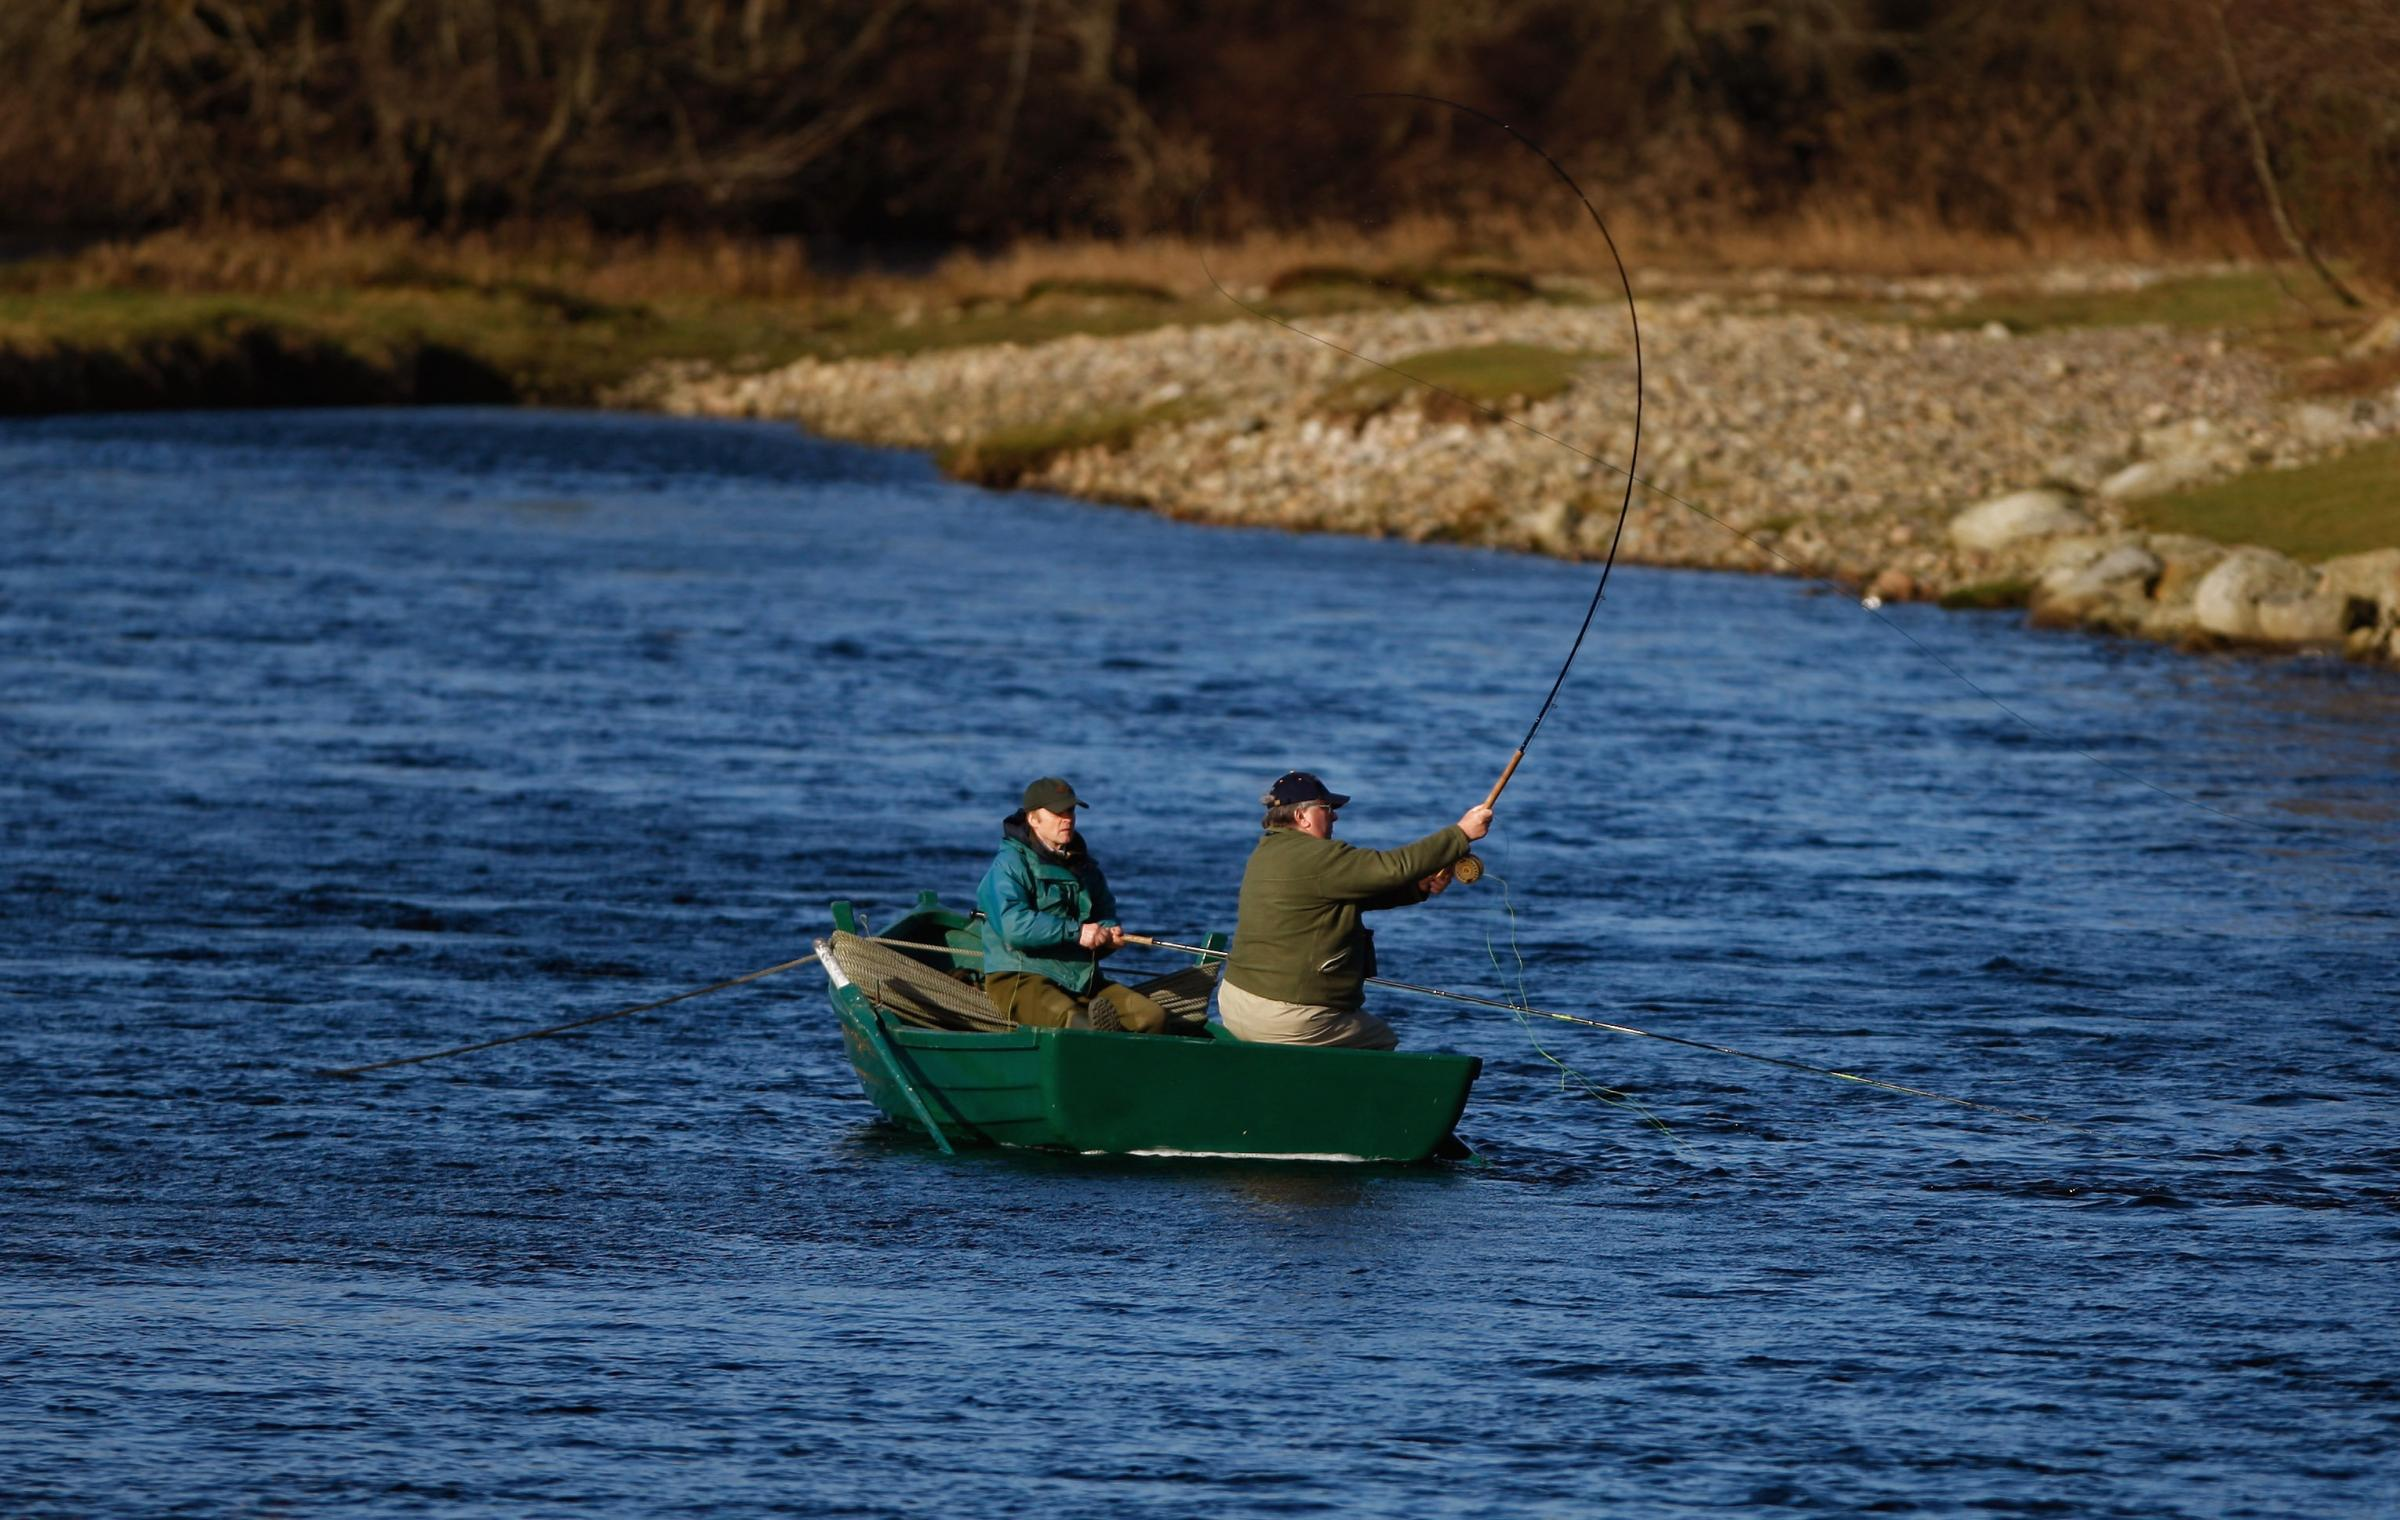 BANCHORY, SCOTLAND - FEBRUARY 25:  A fisherman casts on the lower Crathes beat on The River Dee on February 25, 2009 in Banchory, Scotland. Internationally renowned for its salmon fishing, bookings on the river are up 20% on last year despite the credit c